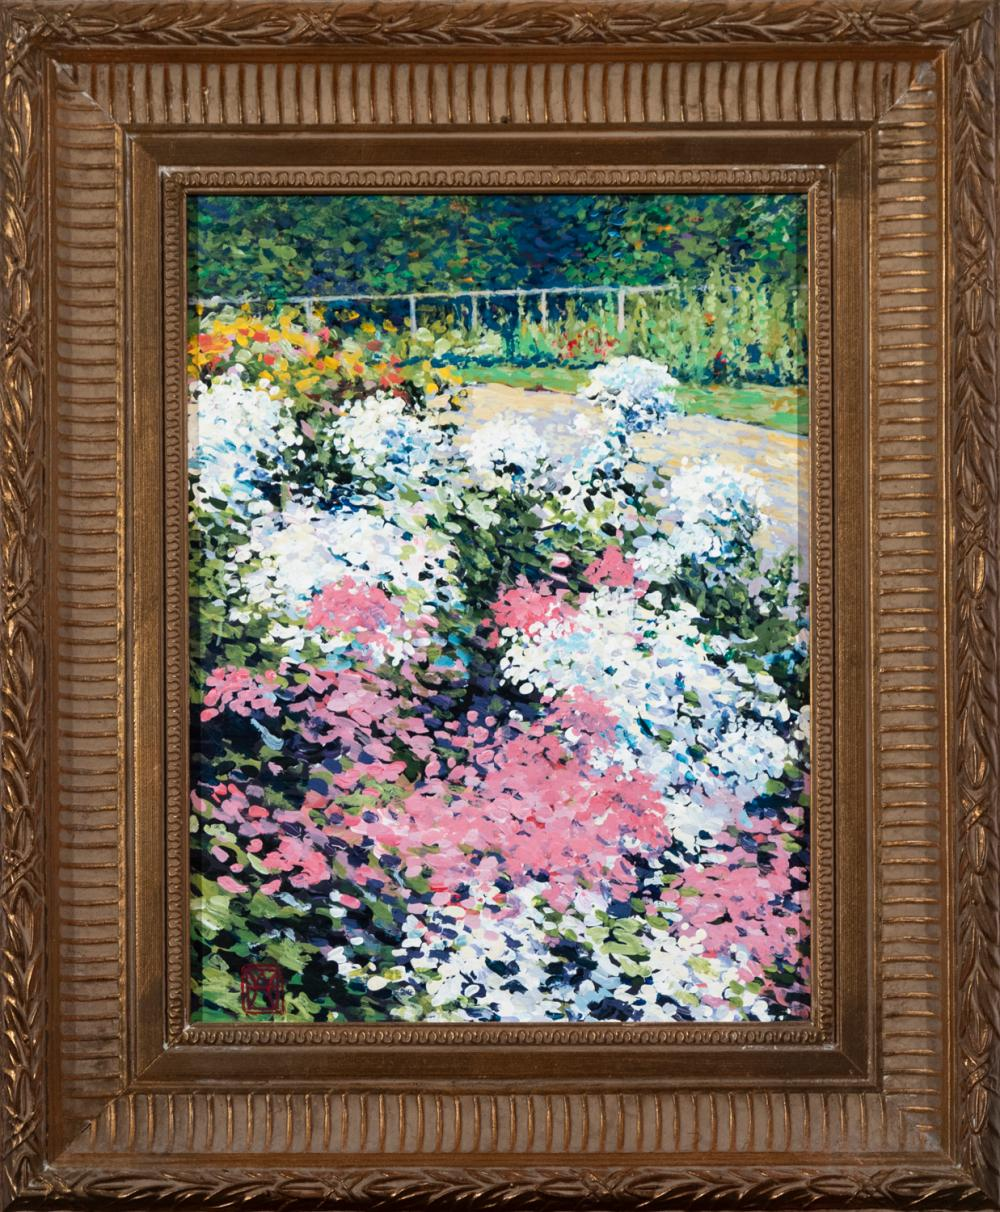 Wally Ames, Vermont (b. 1942), Flower Garden, oil on masonite, 12 x 9 inches